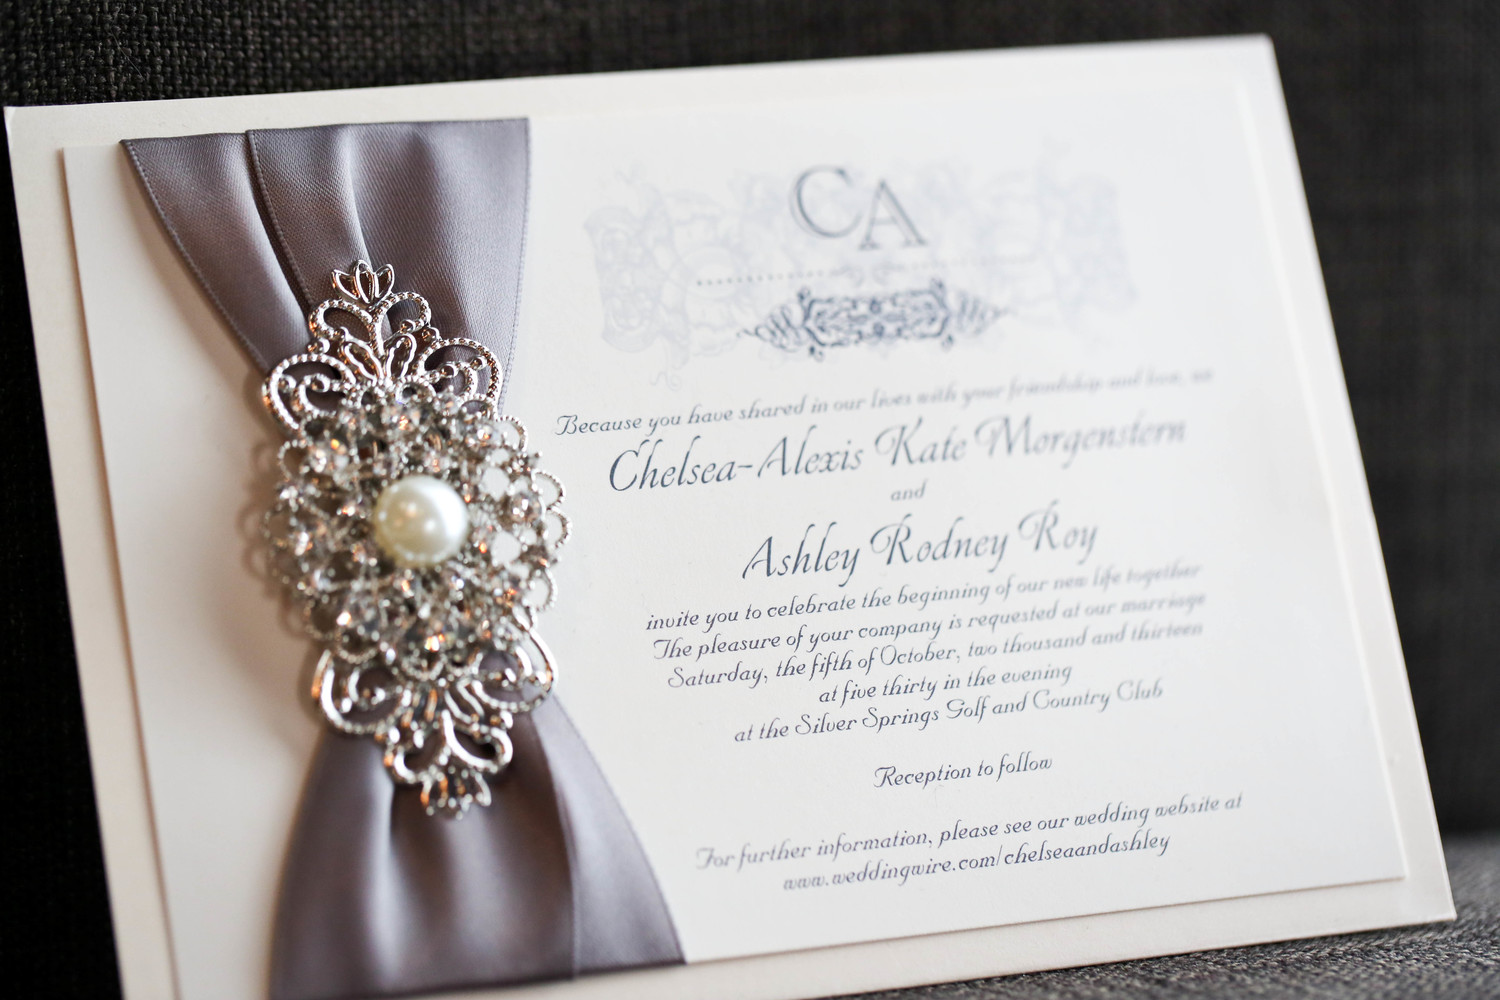 Wedding Websites & Invitations: What information belongs where ...